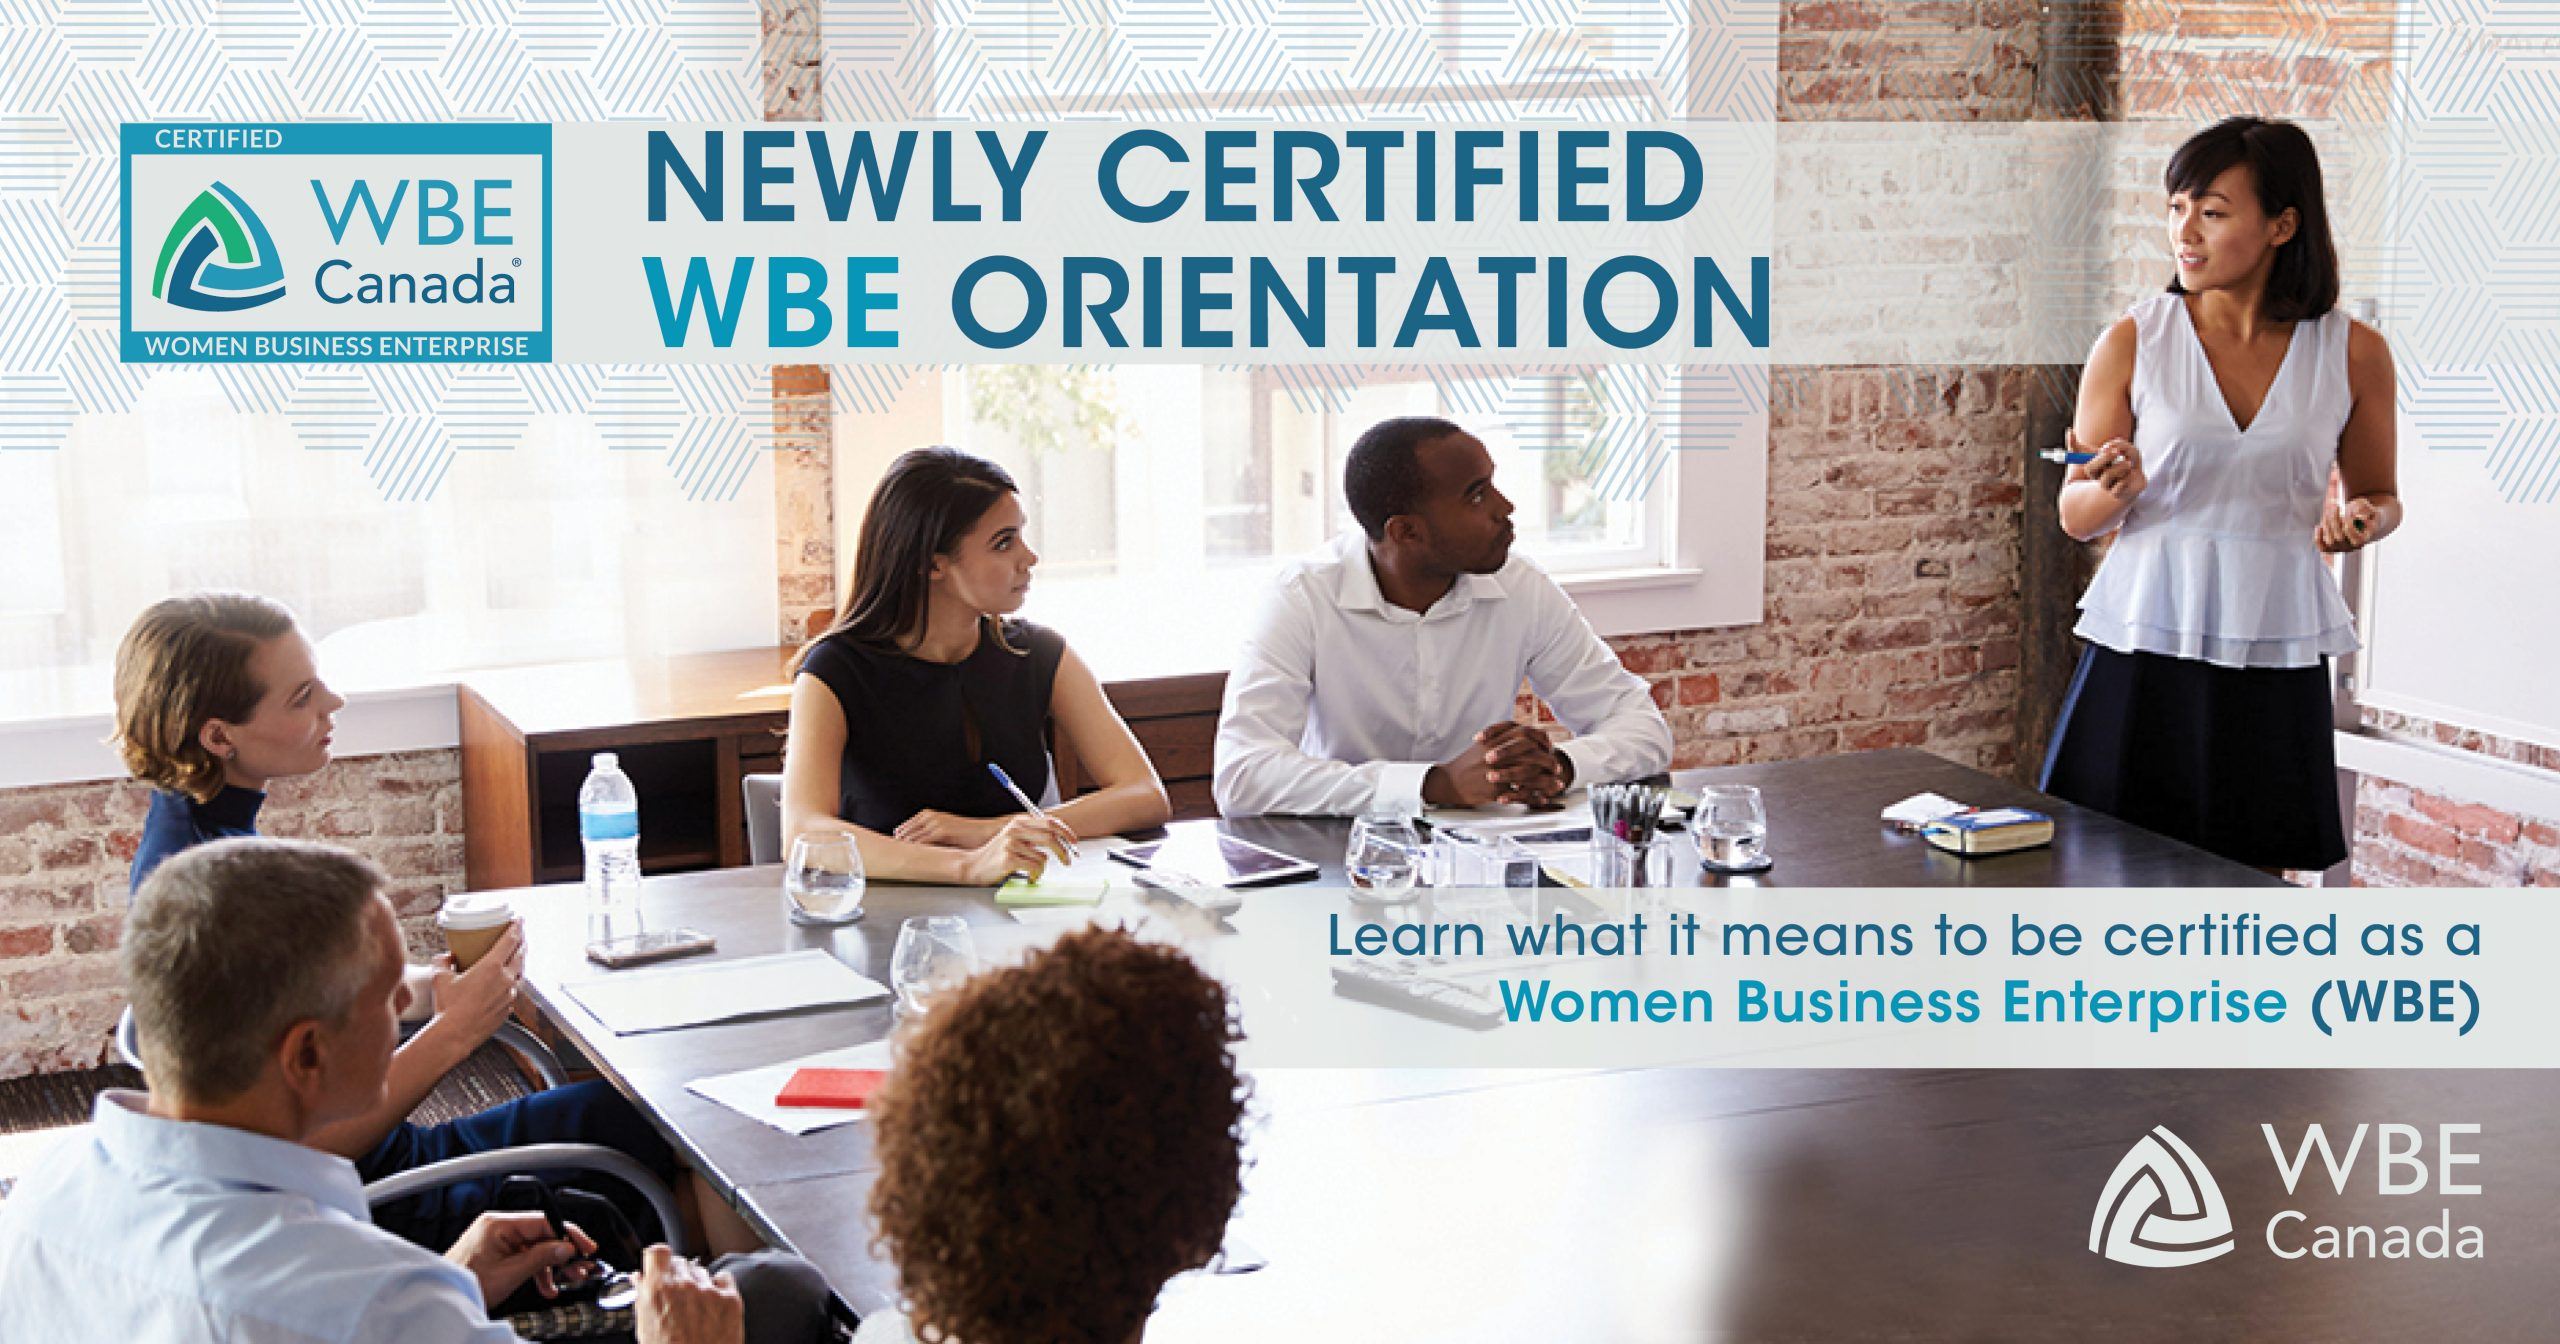 Newly Certified WBE Orientation